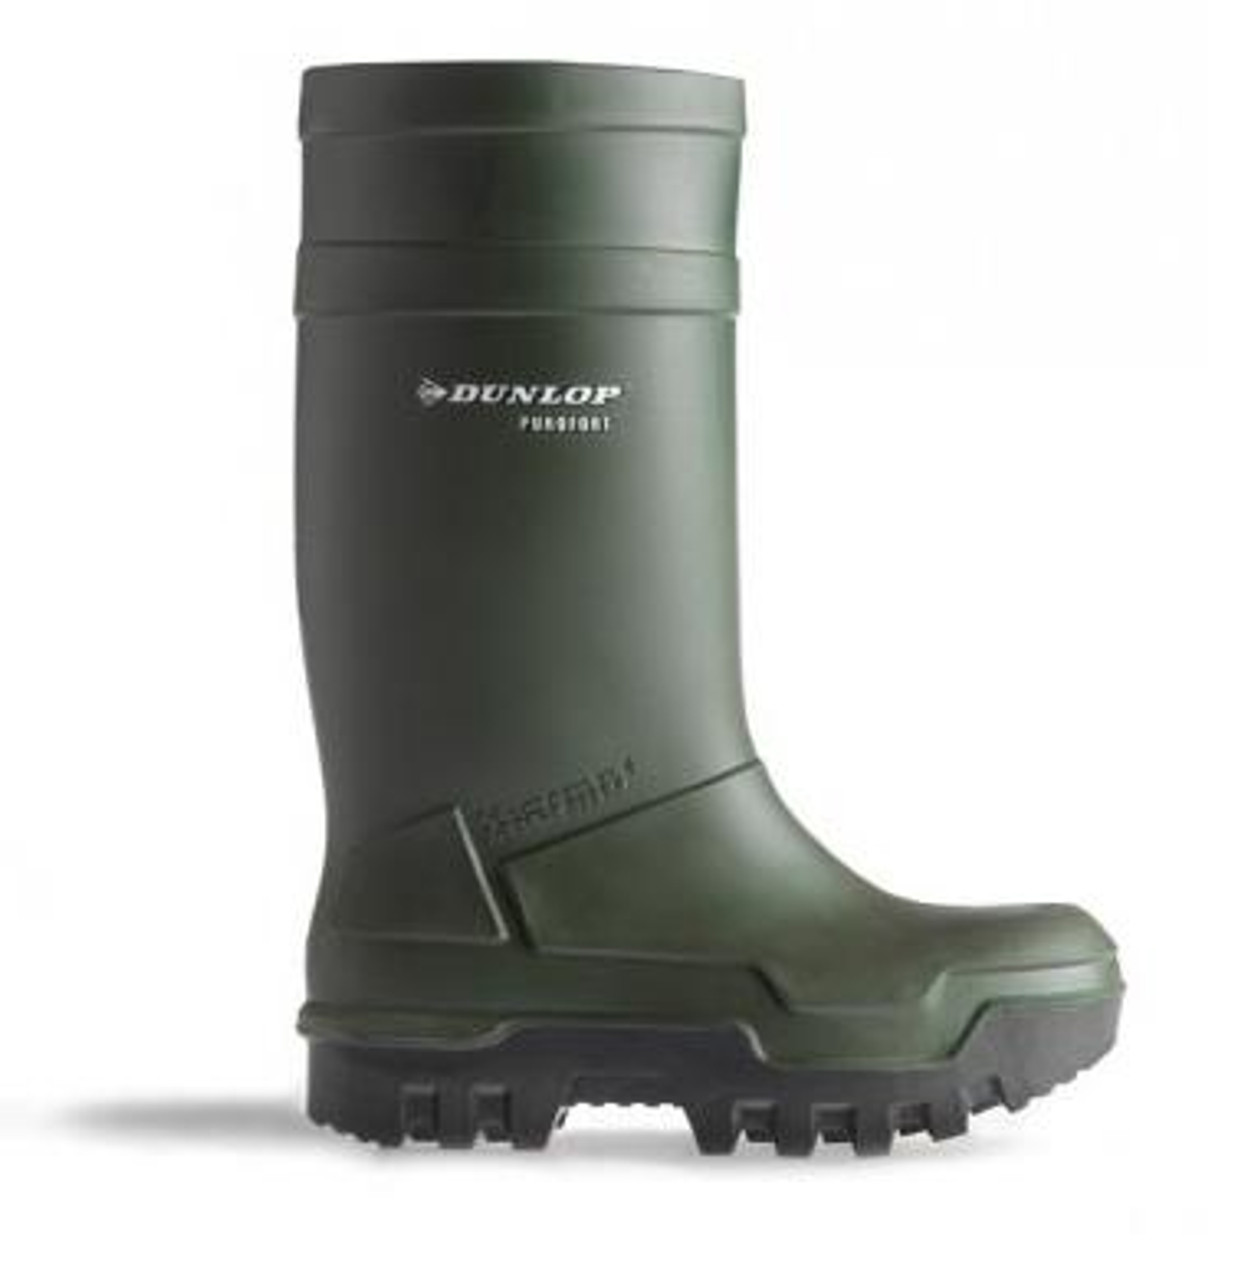 fb6ea6ed6ff Dunlop Purofort Thermo+ Full Safety Work Boot